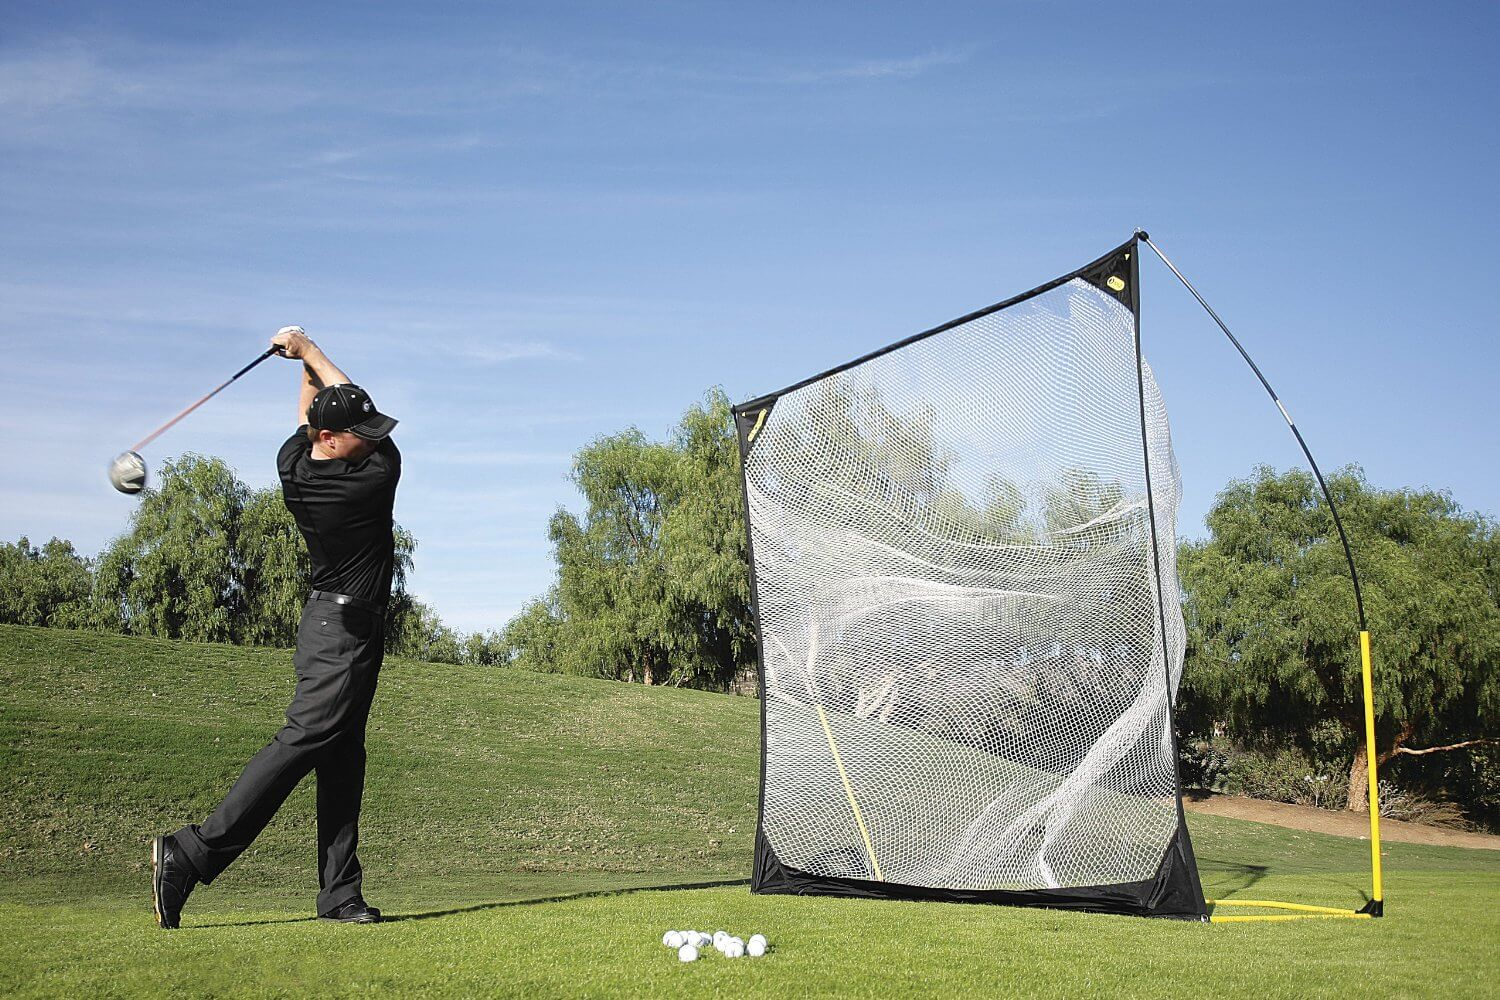 golf-nets-practice-3-deemples